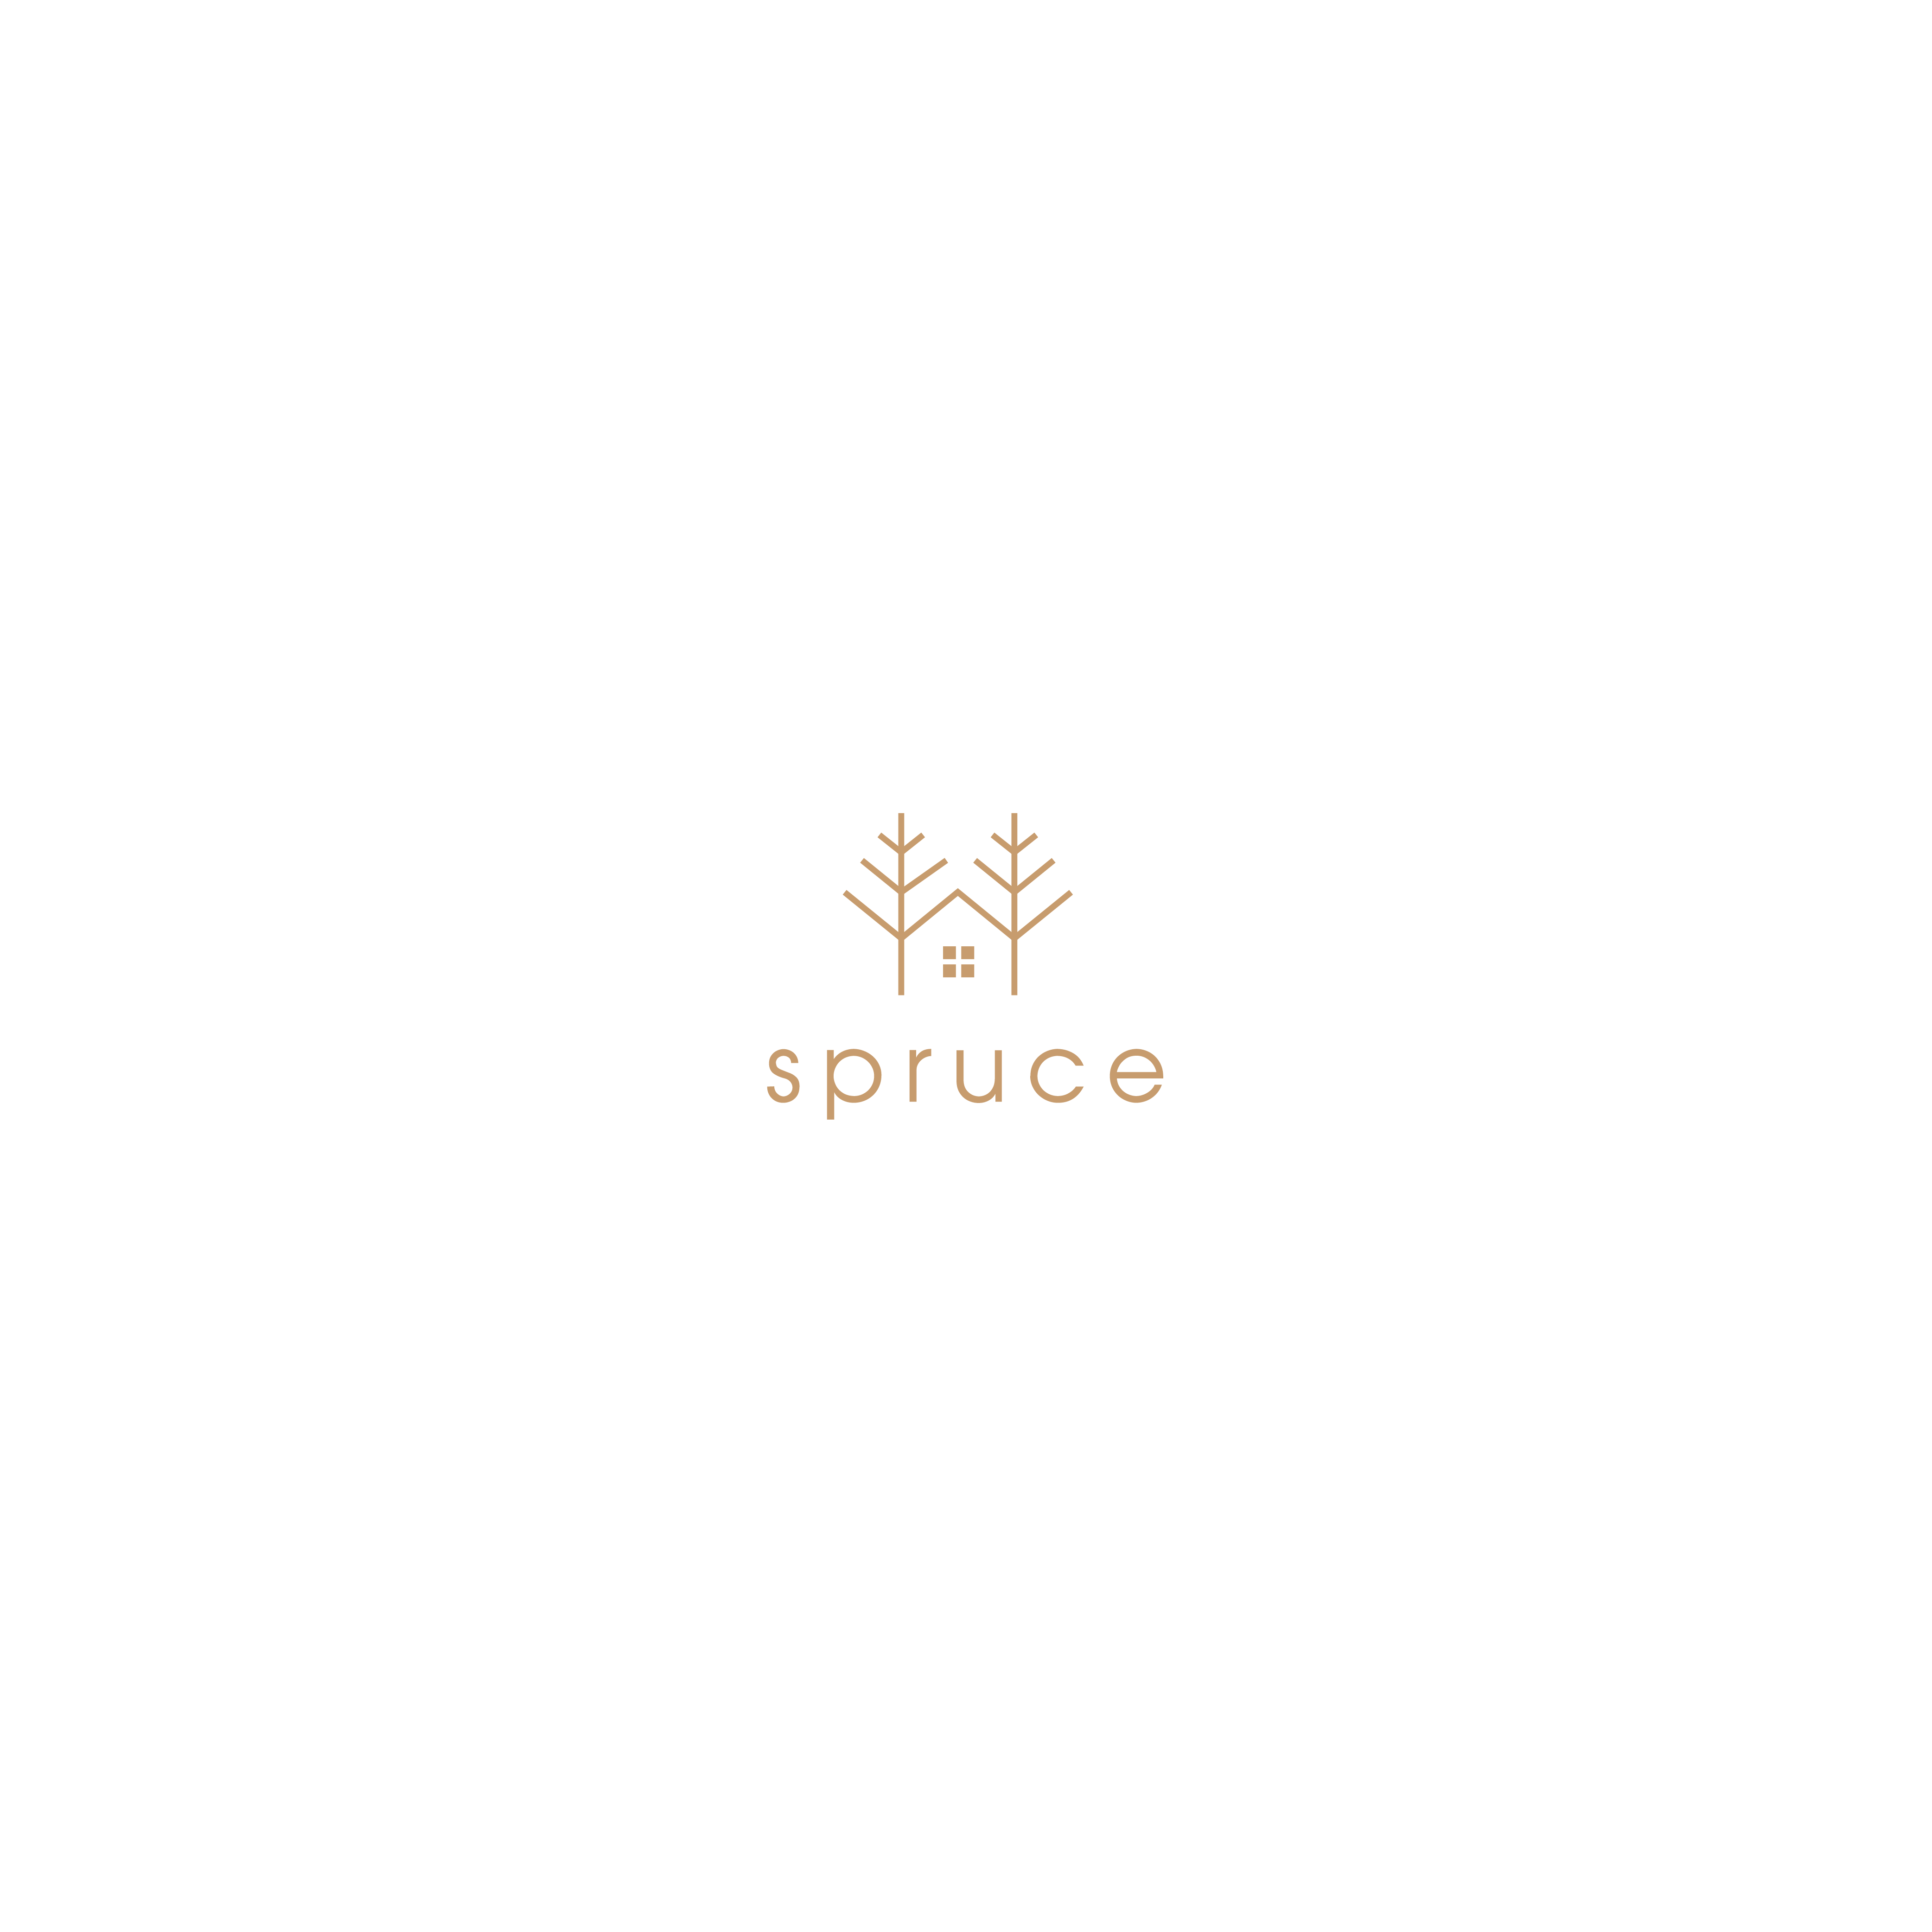 """Up and coming Interior decorator needs simple logo for """"Spruce"""""""